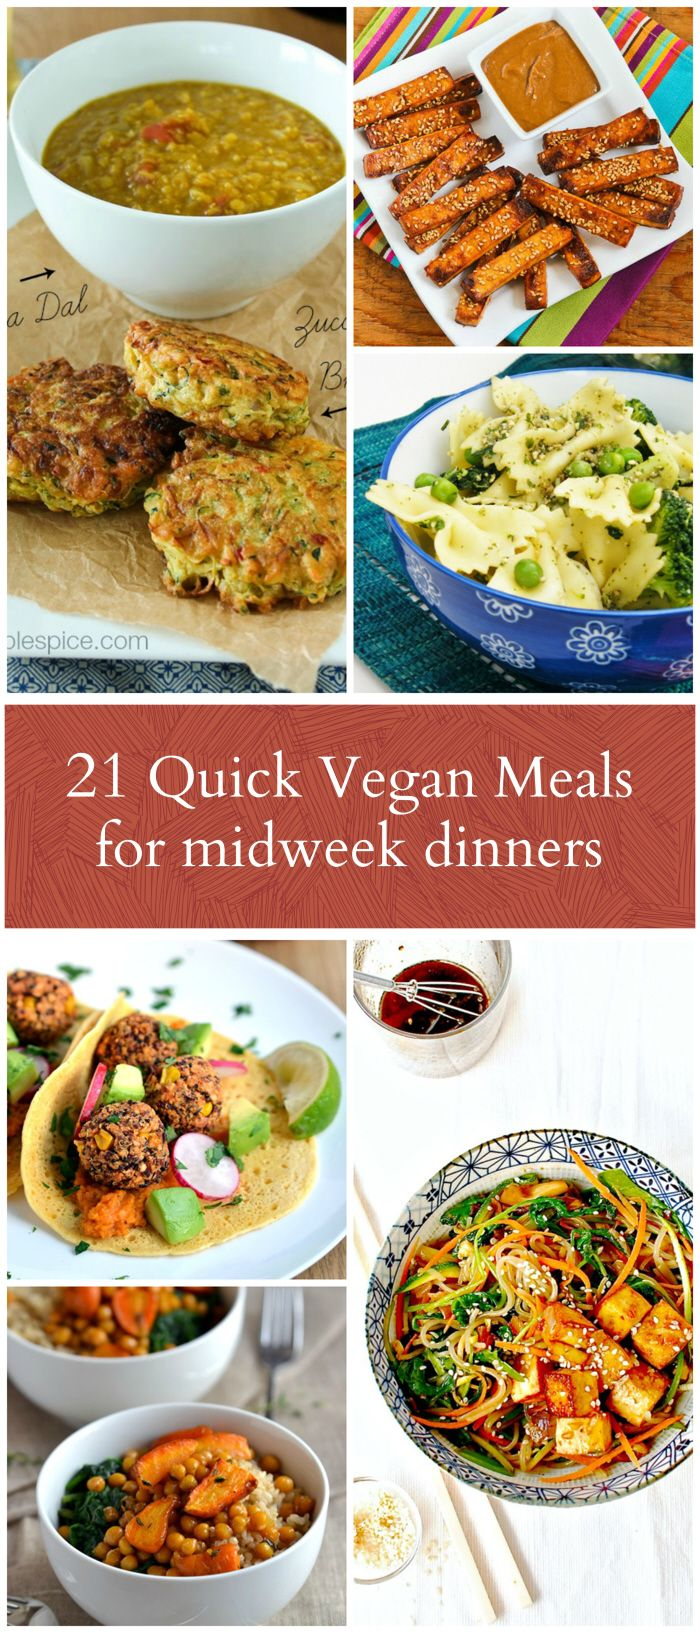 21 Fabulous Recipes For Midweek Dinners Plan Your Week